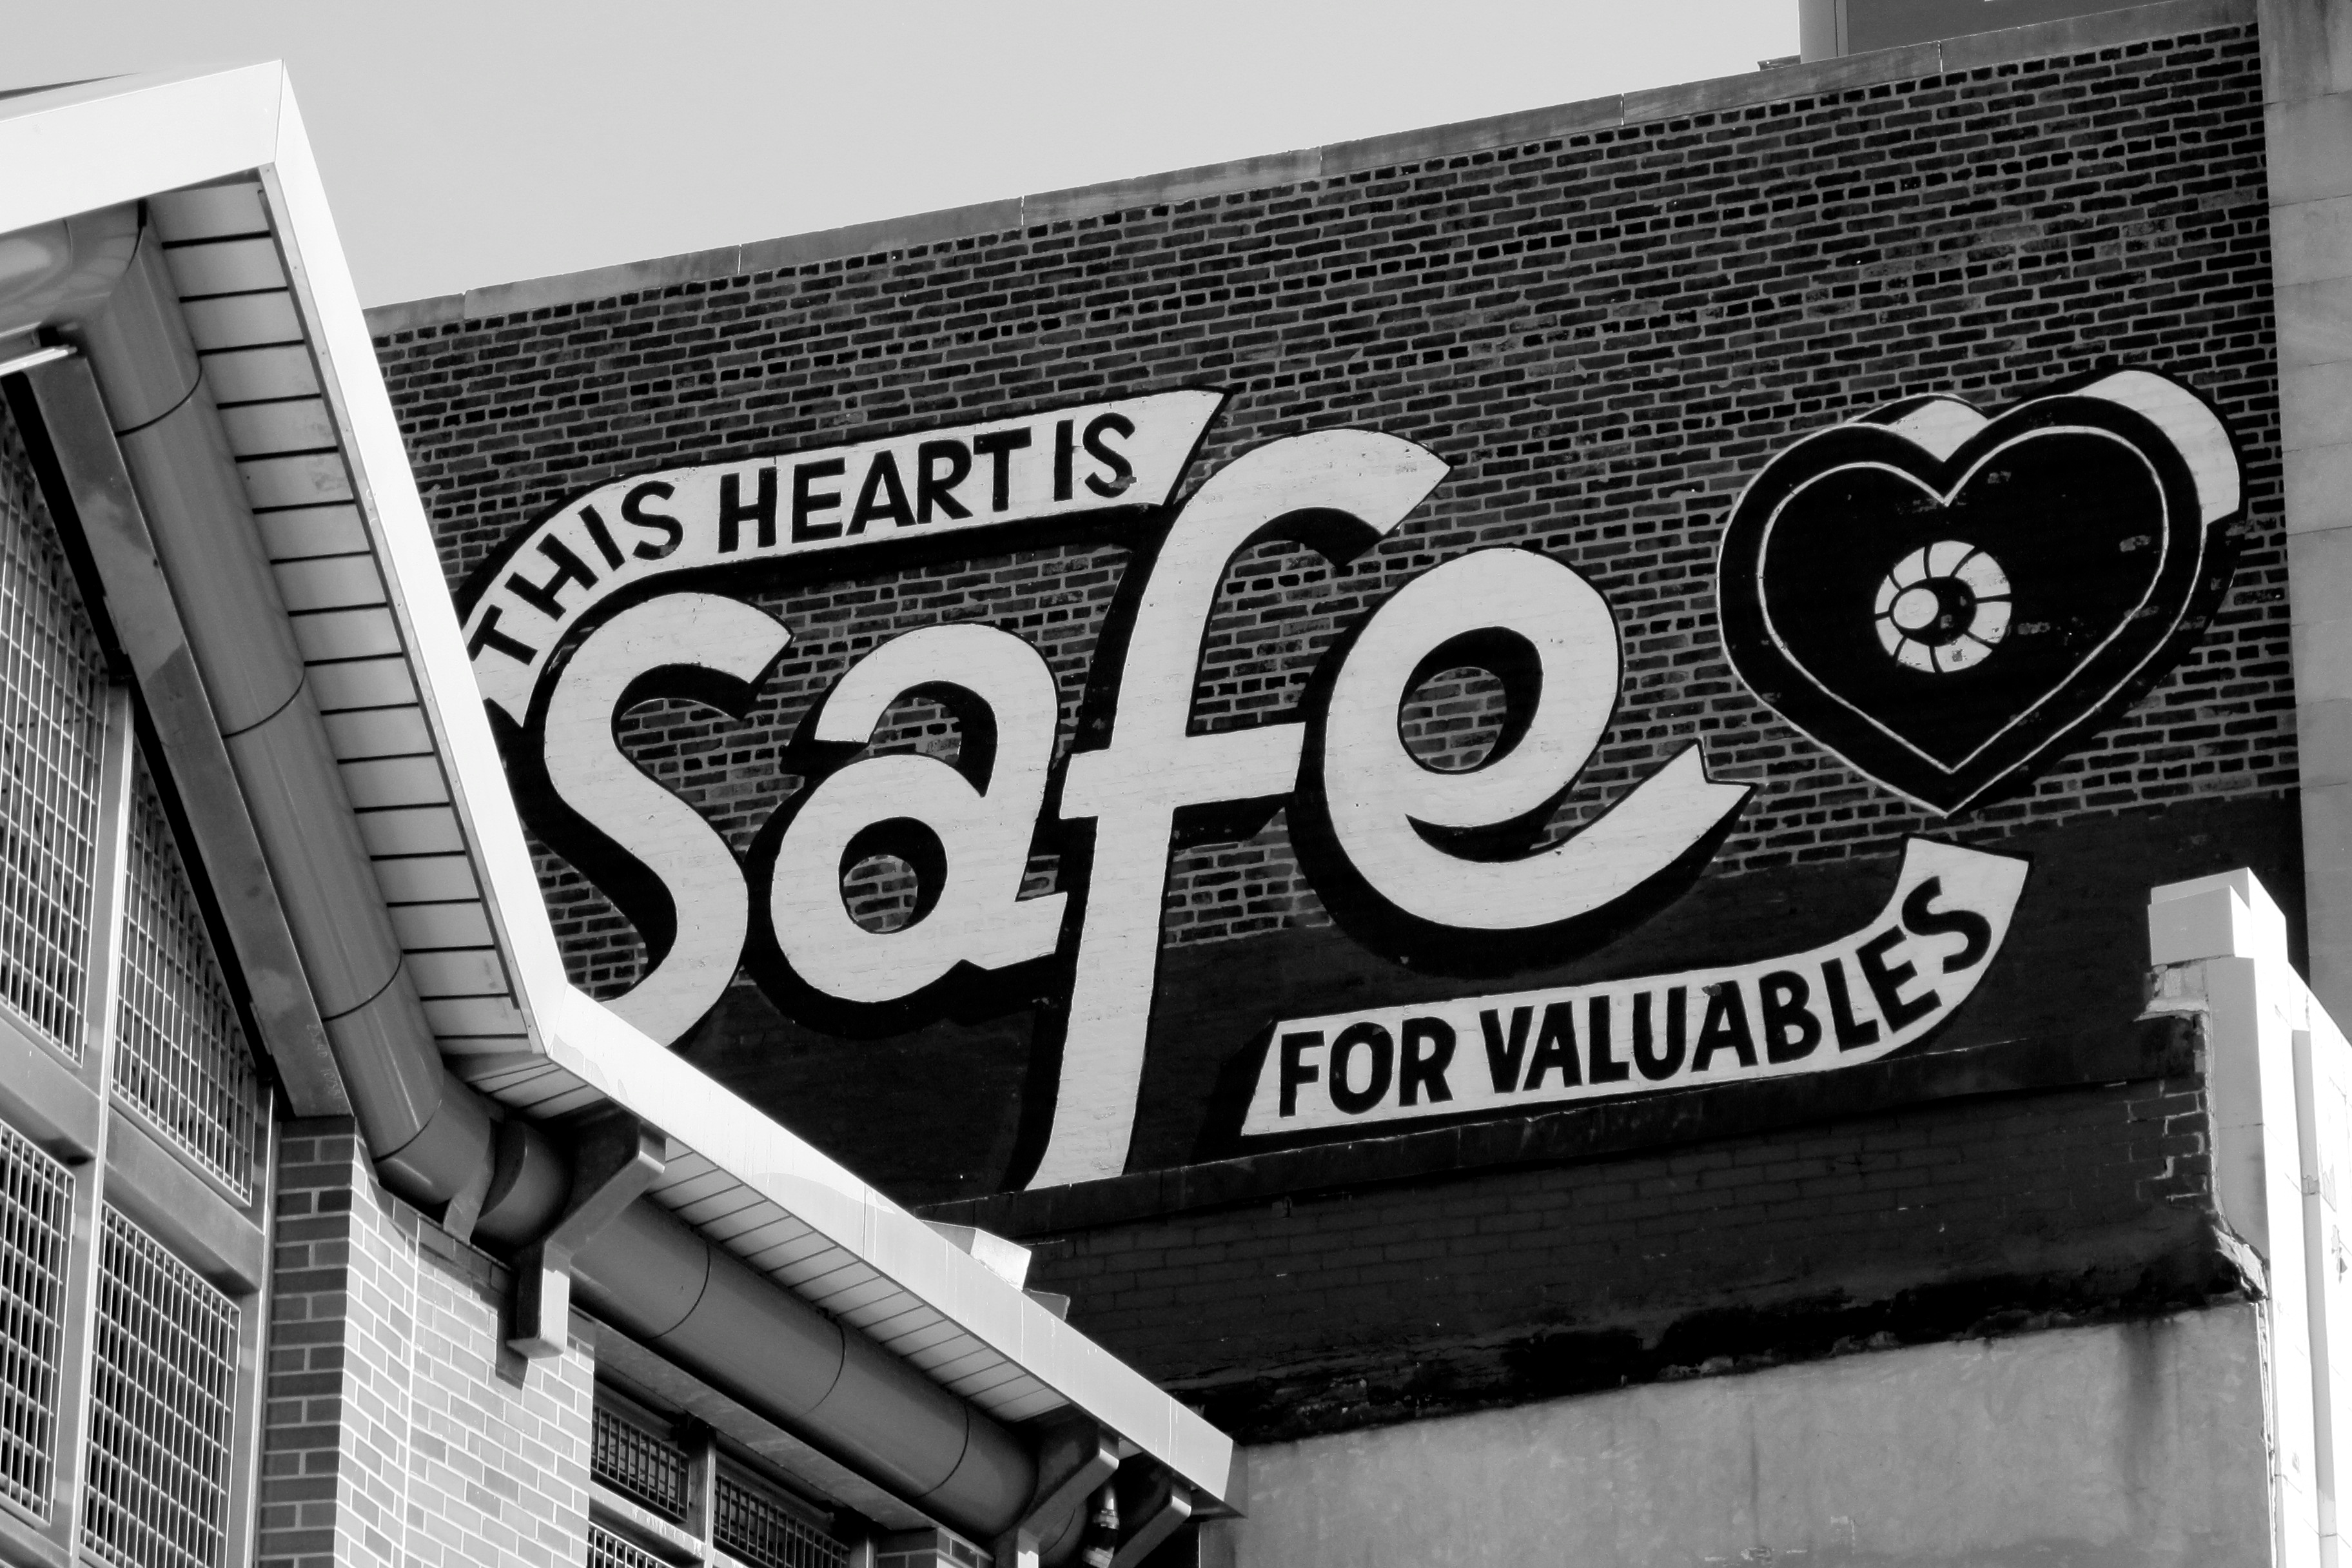 This heart is safe for valuables.